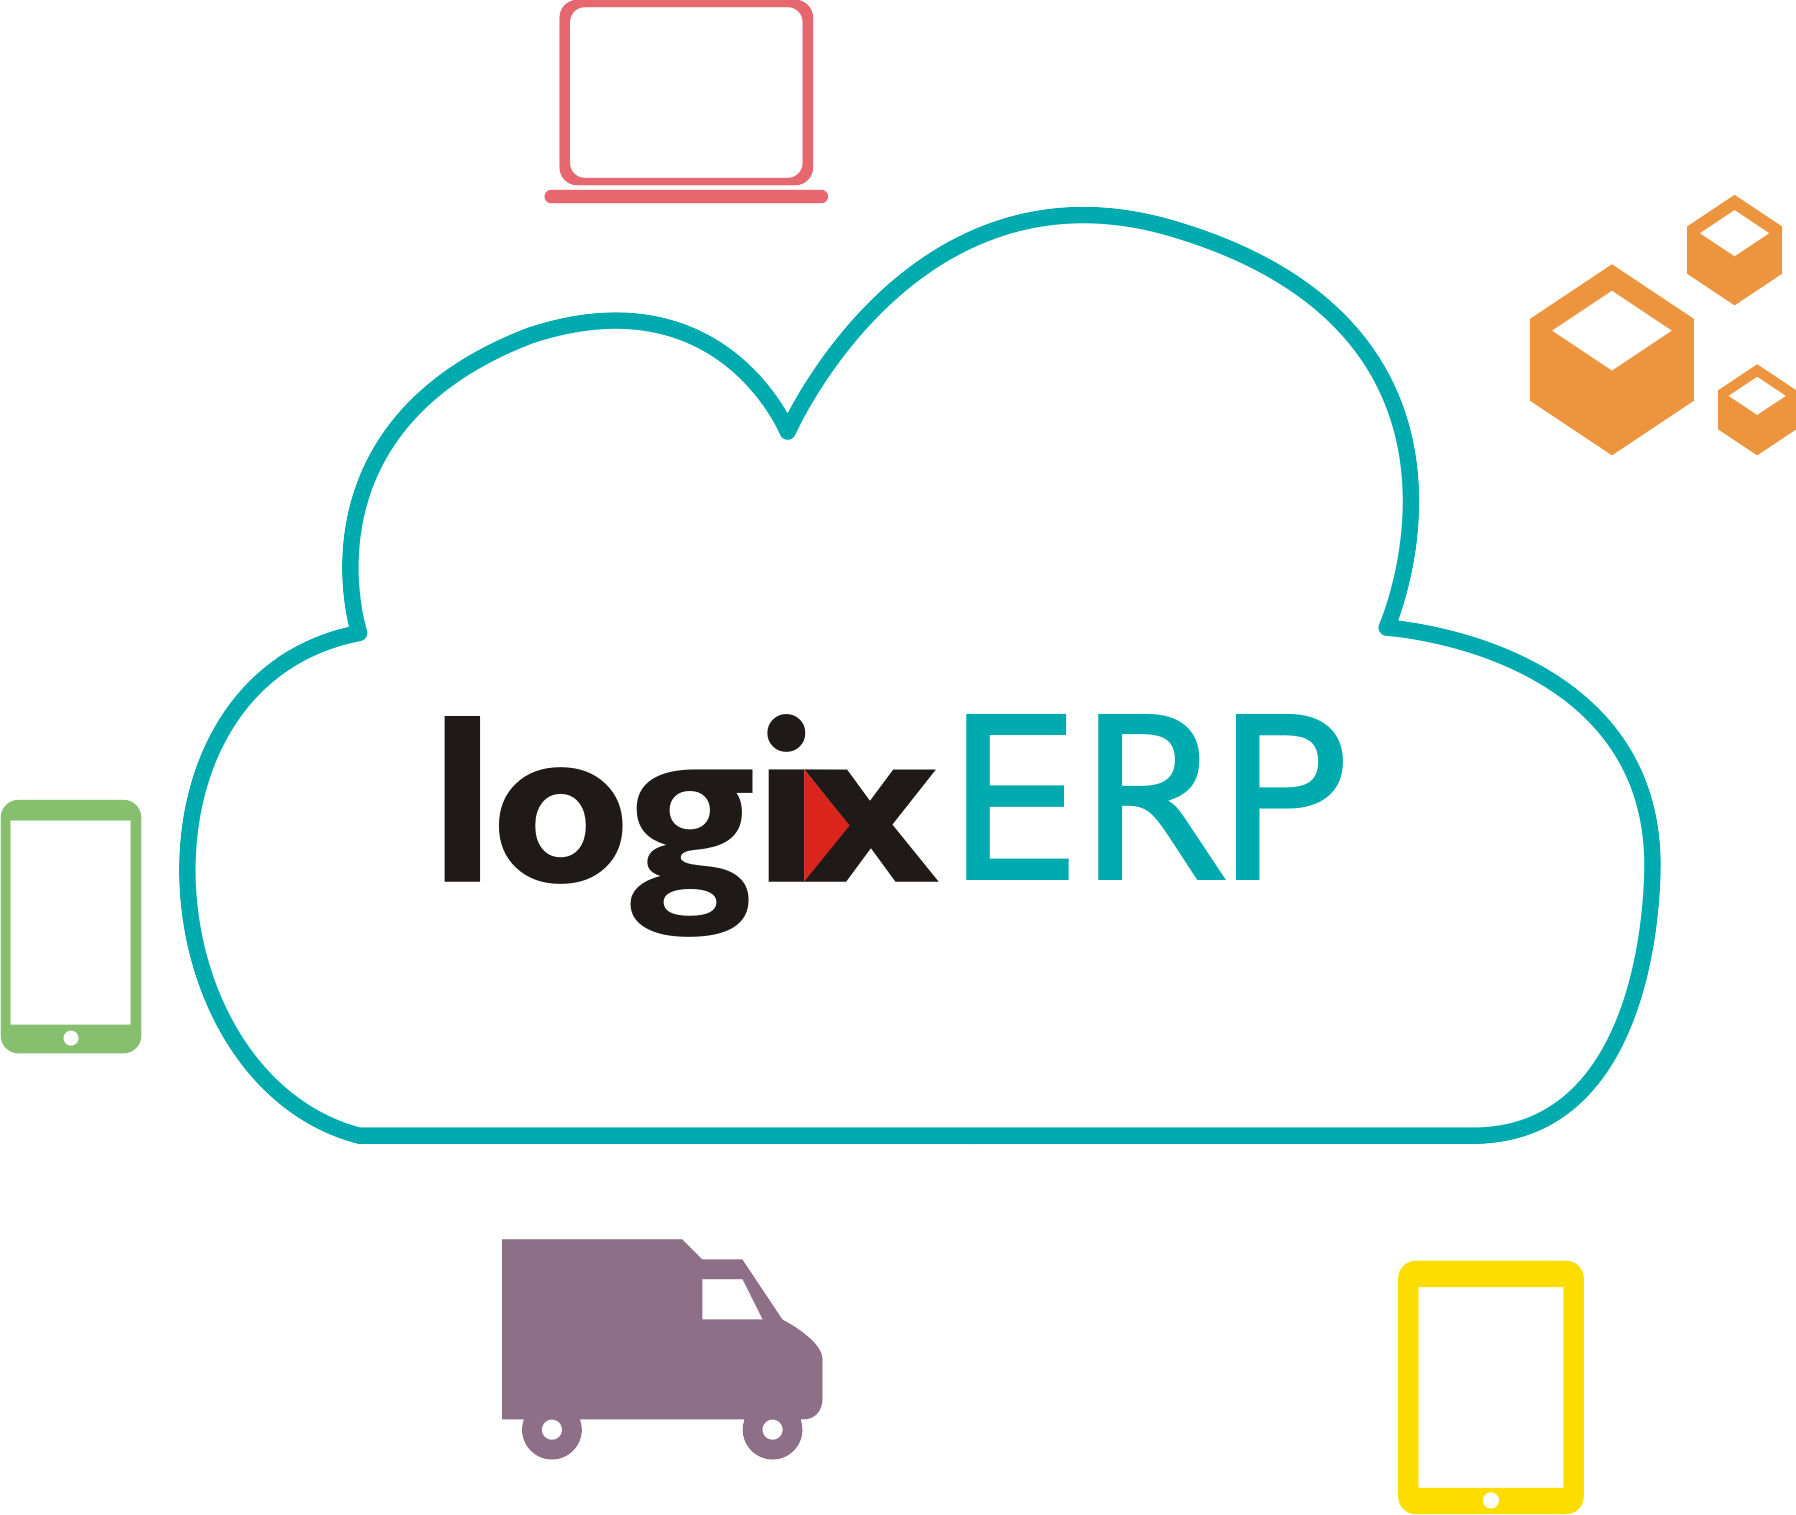 Logistics ERP system, Manufacturing, LogixGRID | Platform and Application for logistics management, LogixGRID | Platform and Application for logistics management